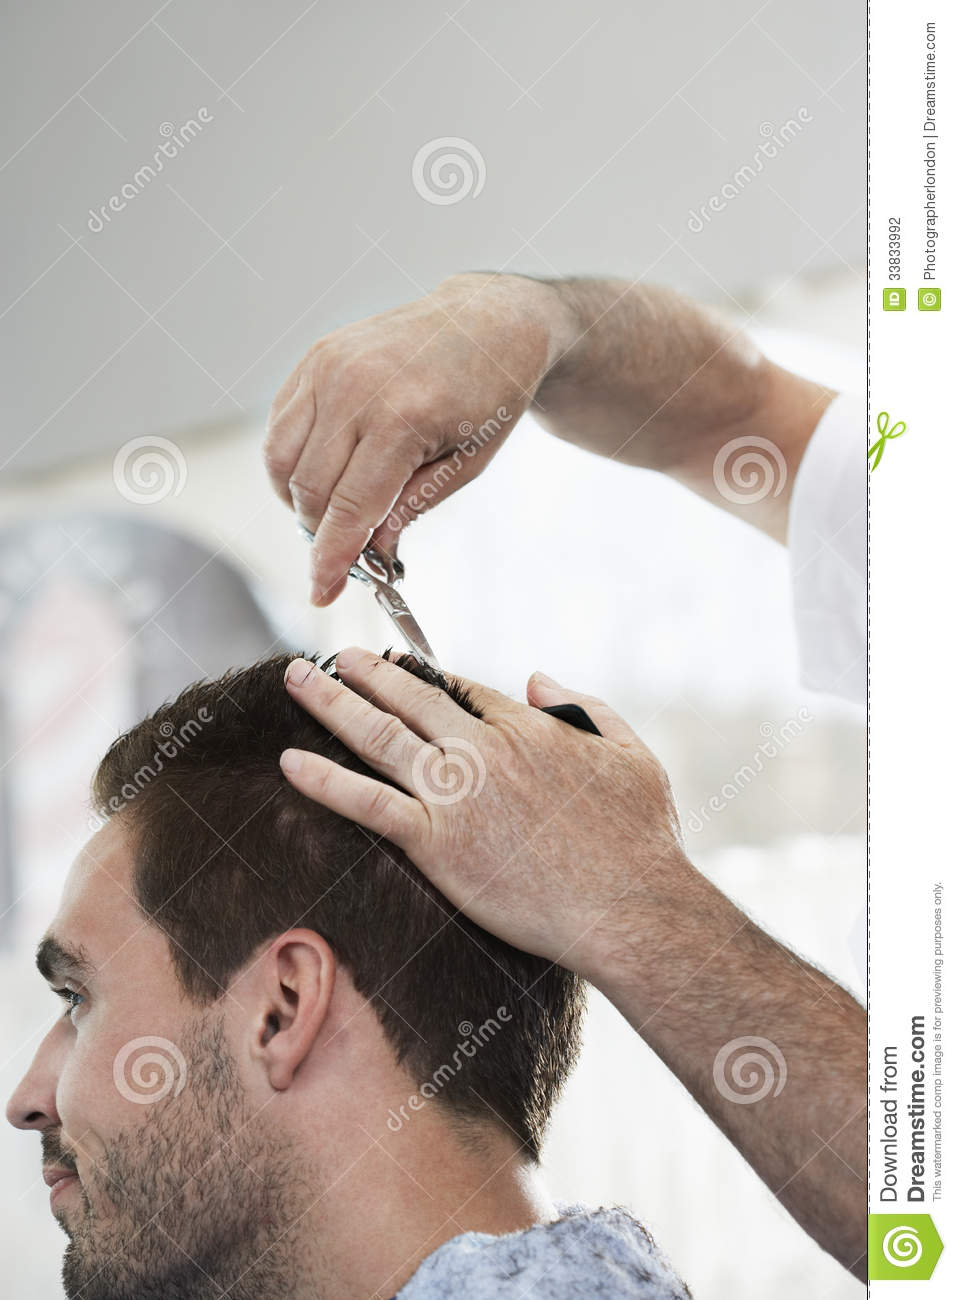 man getting an haircut from hairdresser stock photo image 33833992. Black Bedroom Furniture Sets. Home Design Ideas